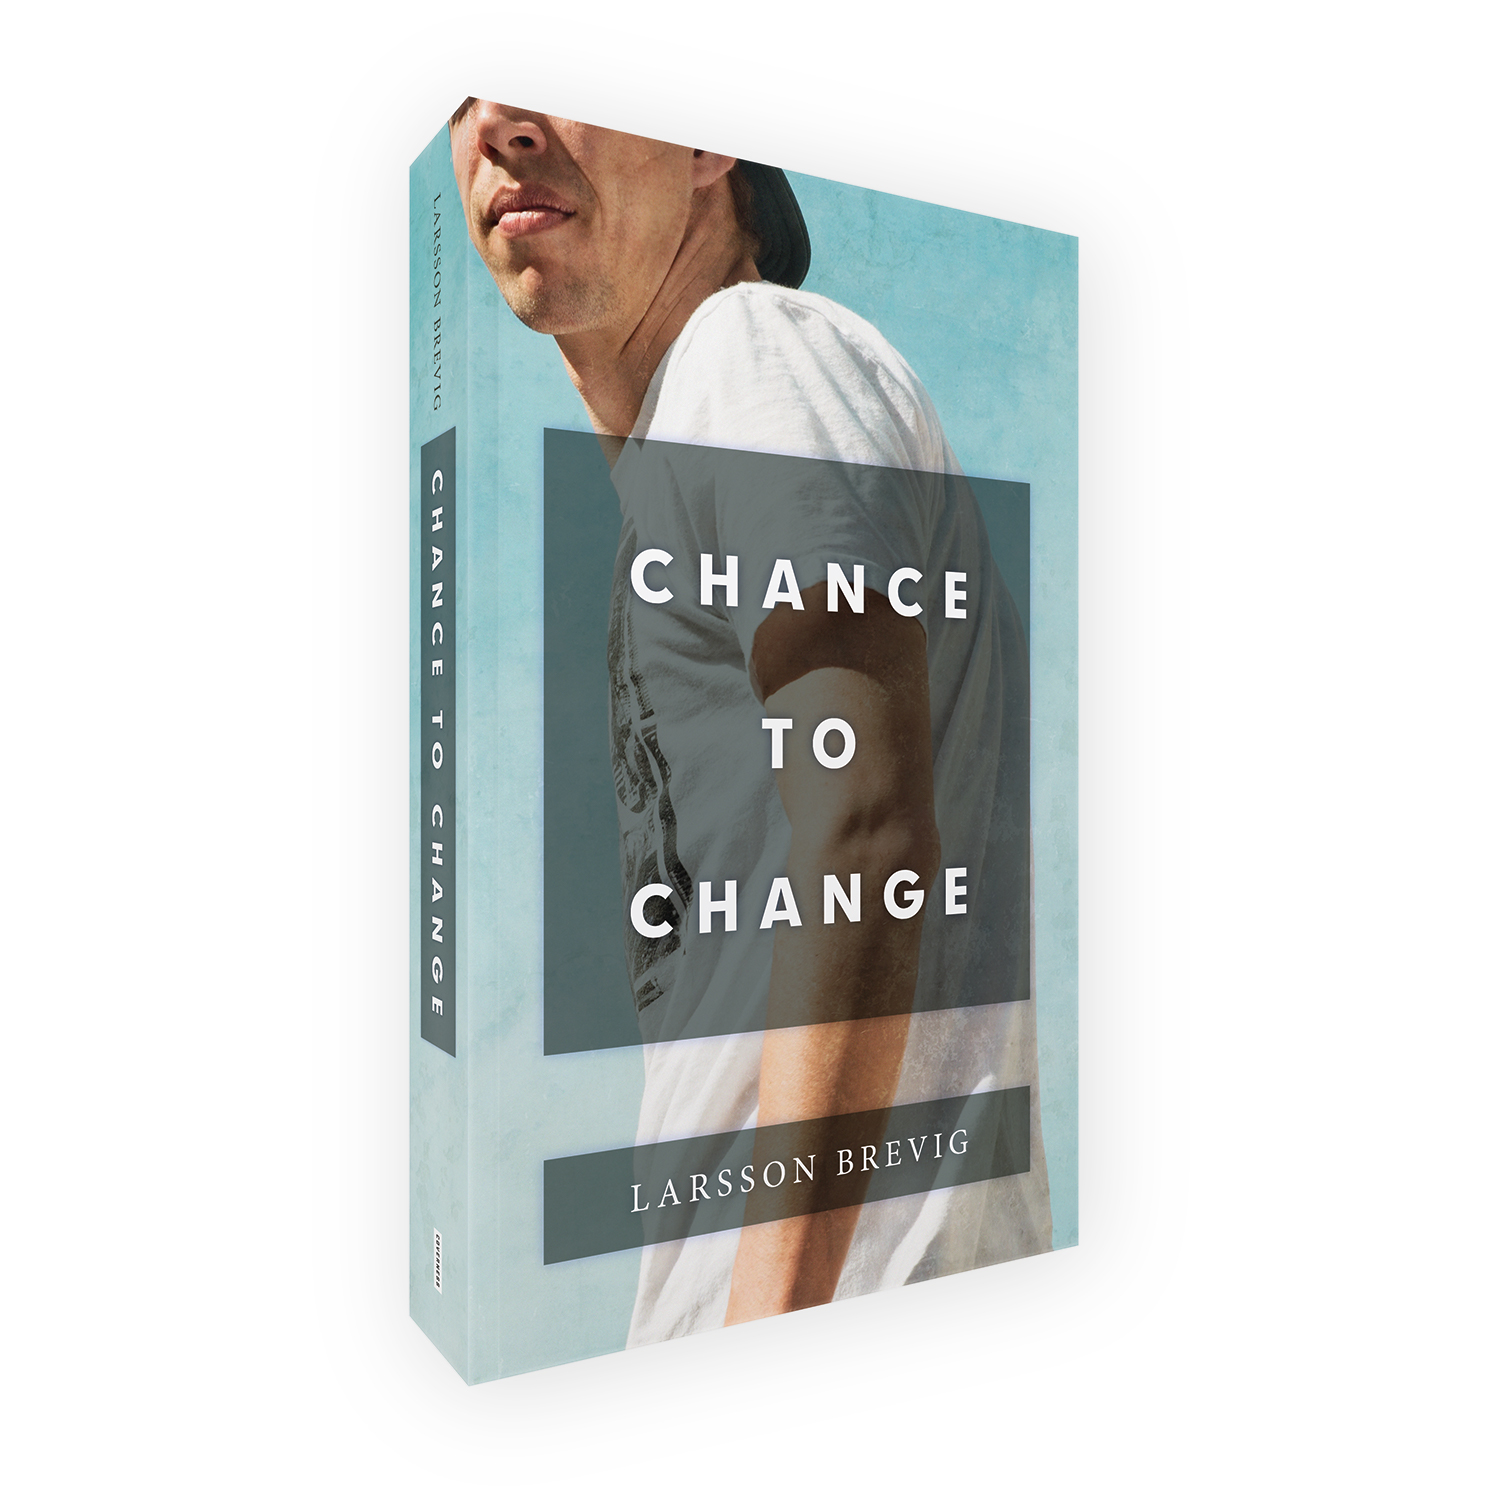 'Chance to Change' is a bespoke cover design for a modern dramatic novel. The book cover was designed by Mark Thomas, of coverness.com. To find out more about my book design services, please visit www.coverness.com.